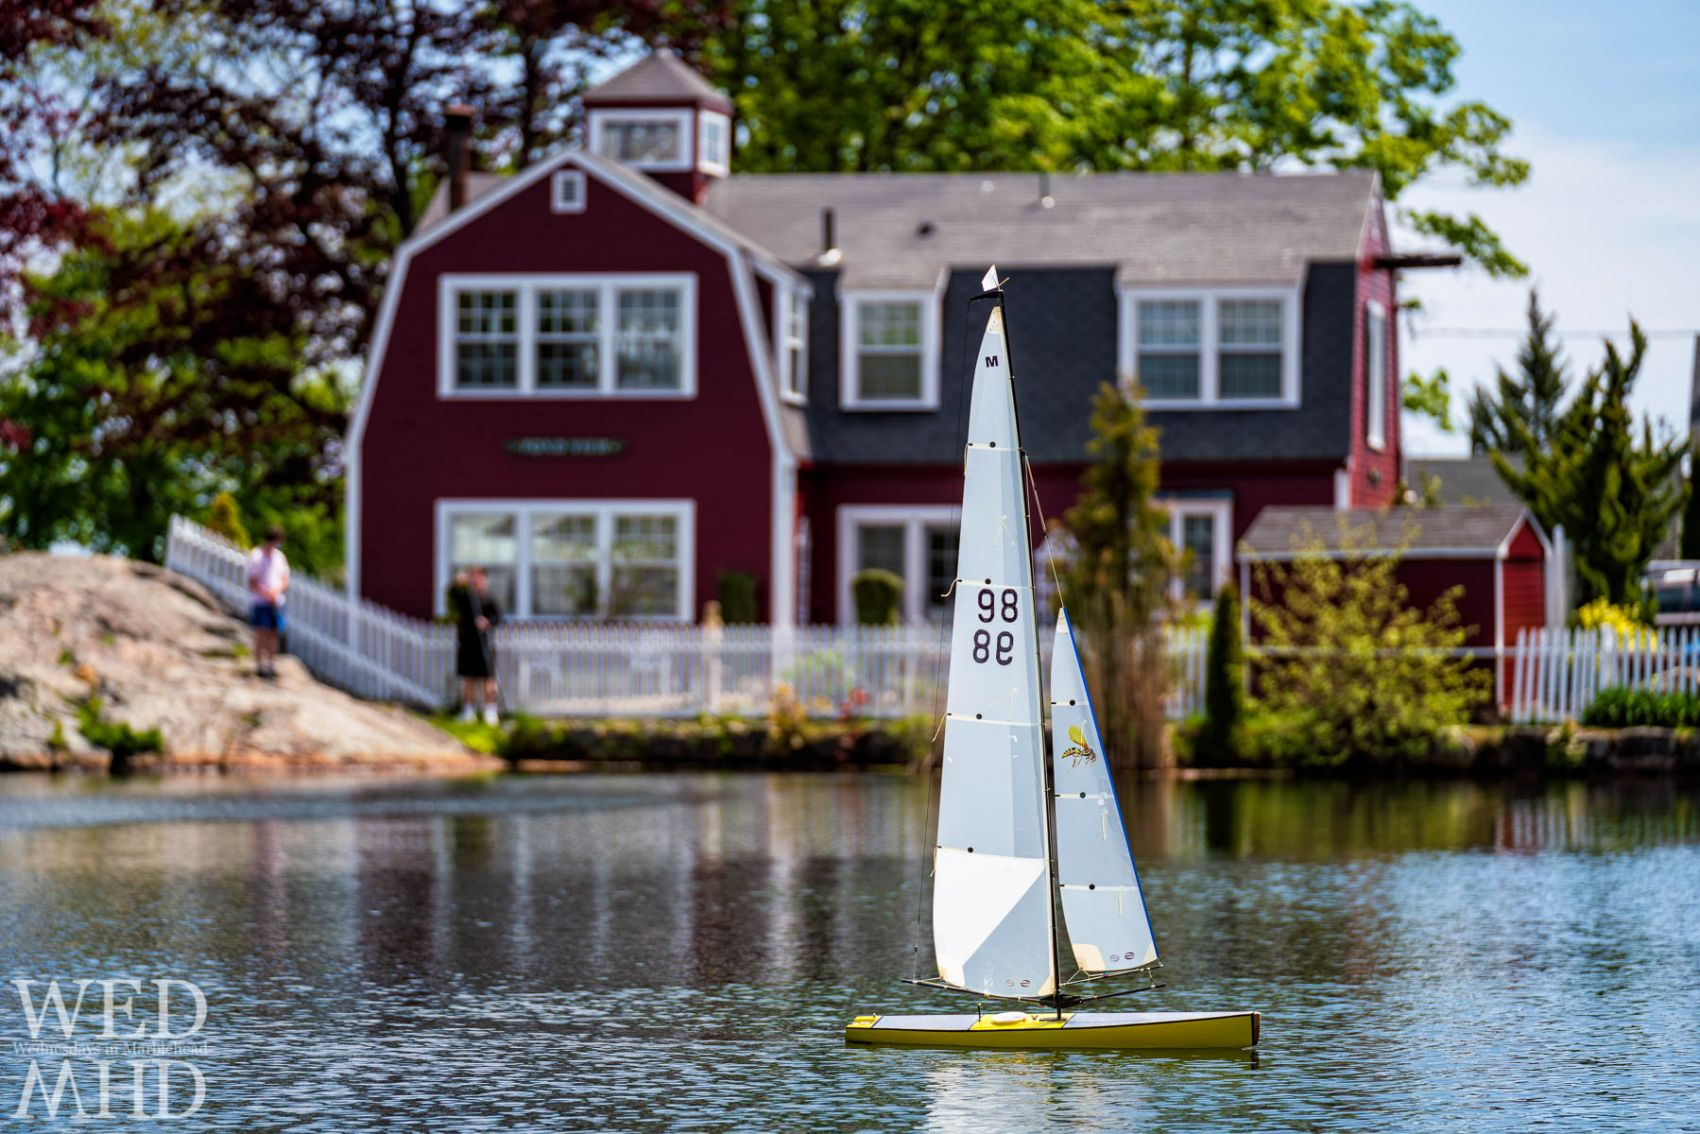 A visit to Redds Pond included capturing a Sunday sail with several boats in the water, people fishing and otherwise enjoying a warm May day